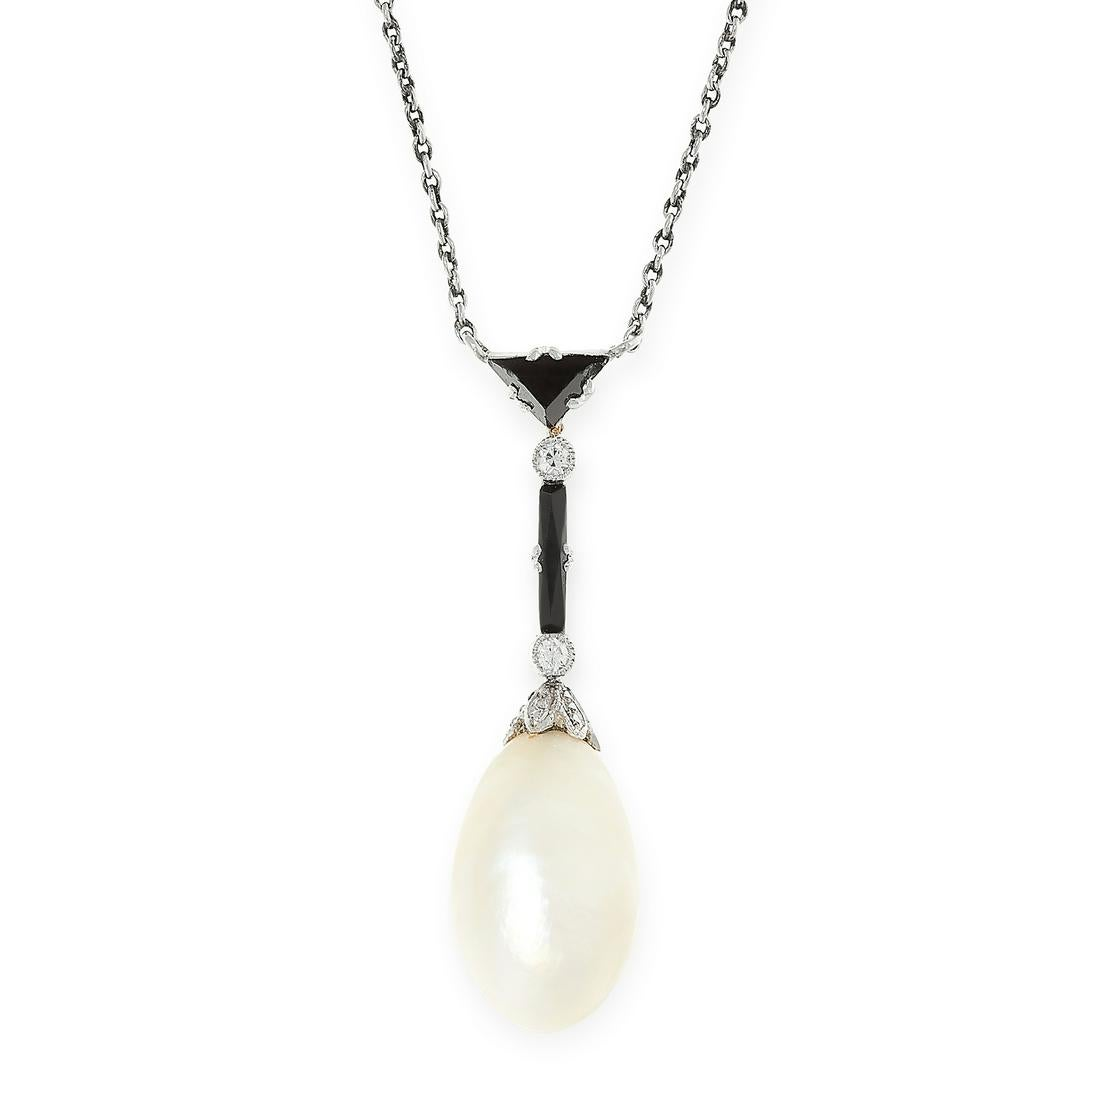 A NATURAL PEARL, ONYX AND DIAMOND PENDANT NECKLACE in 18ct white gold, set with a drop shaped